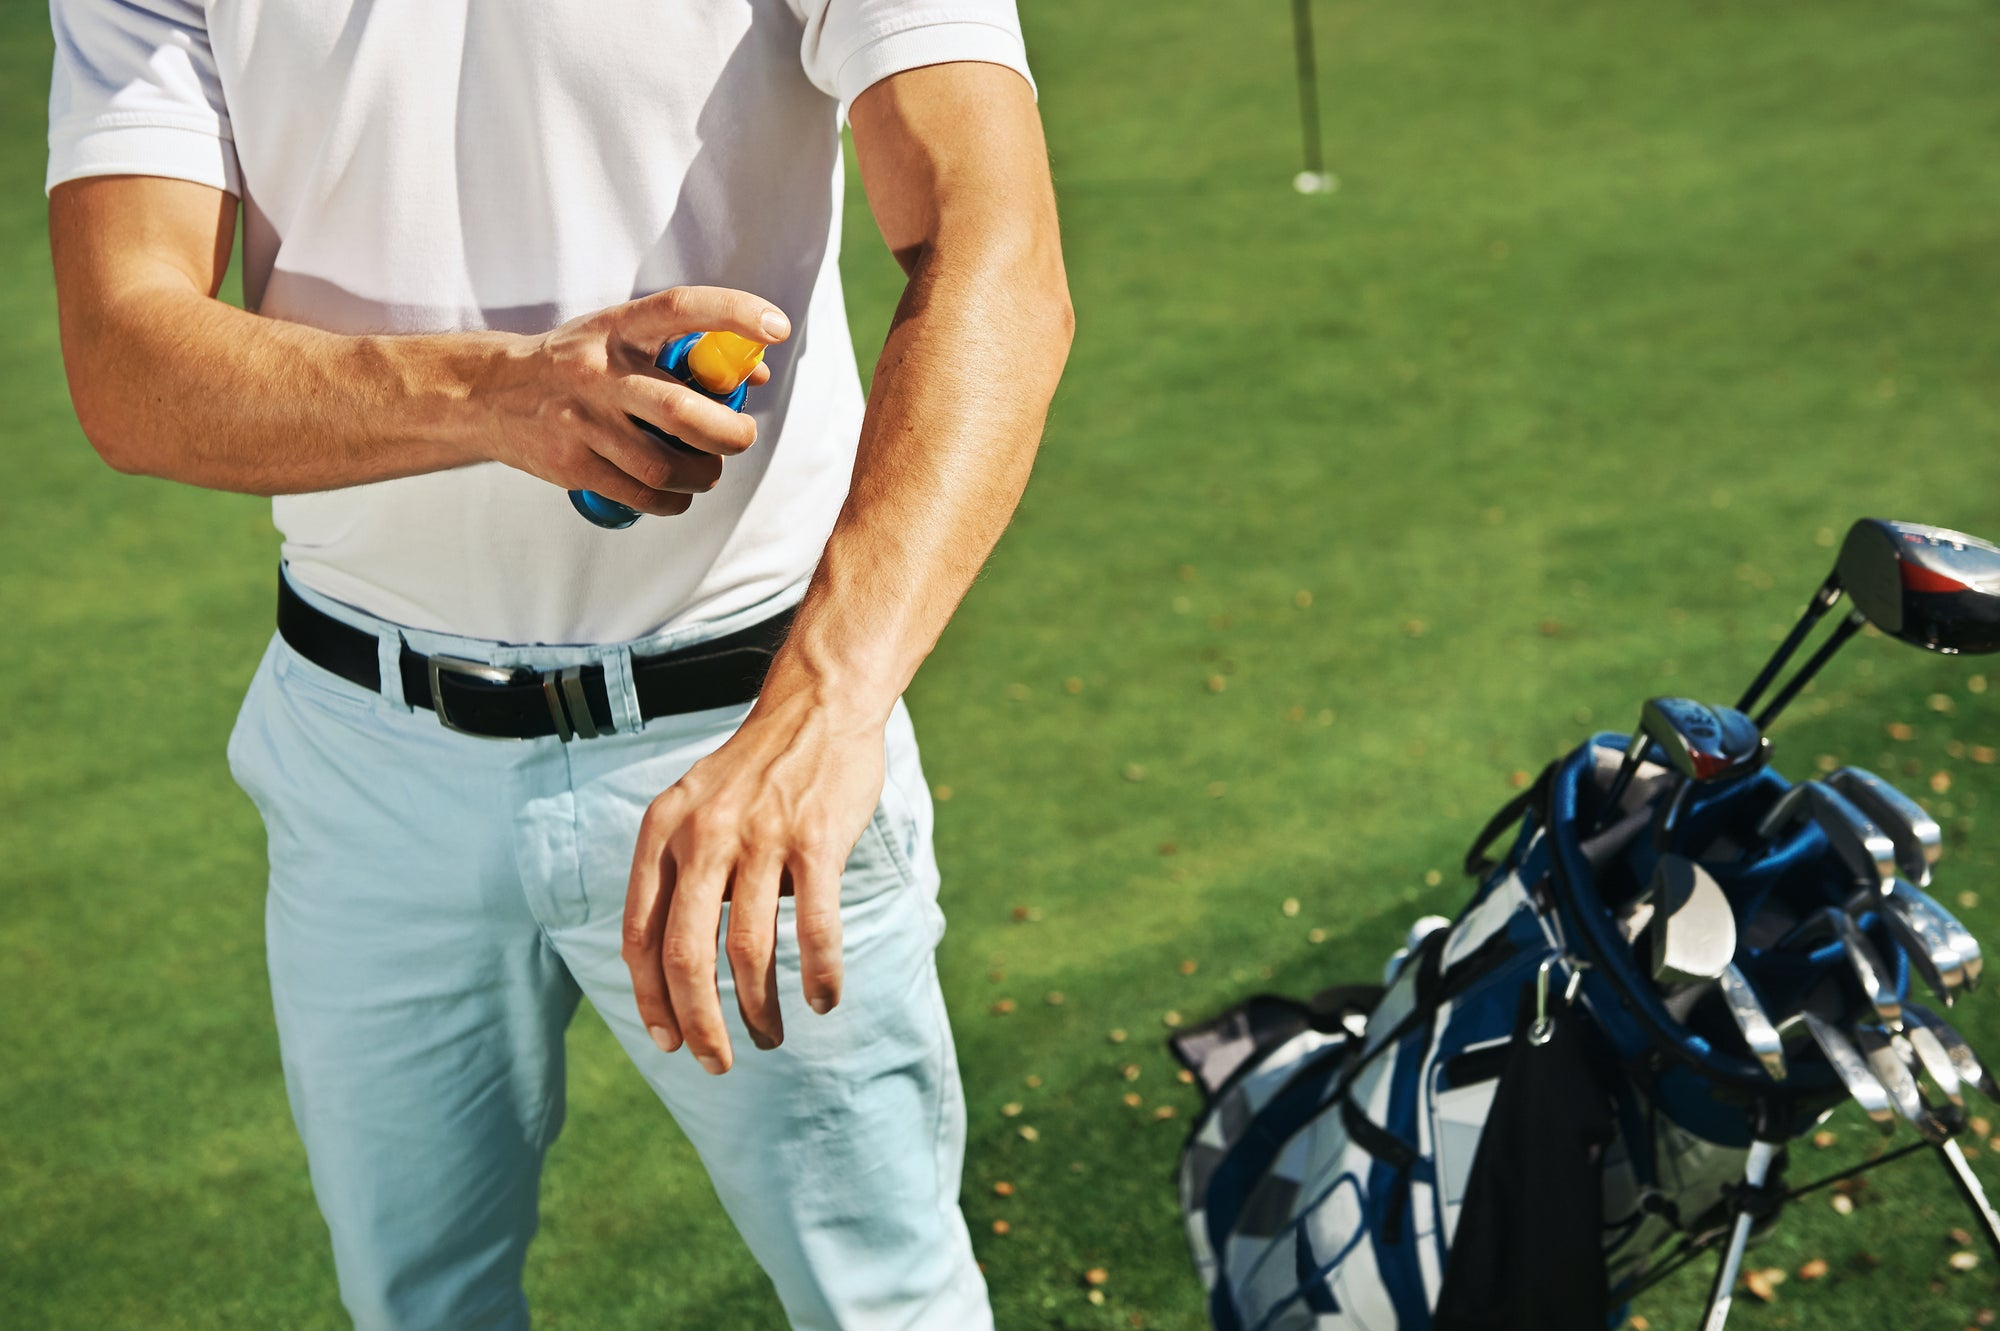 Should Golfers use sunscreen?